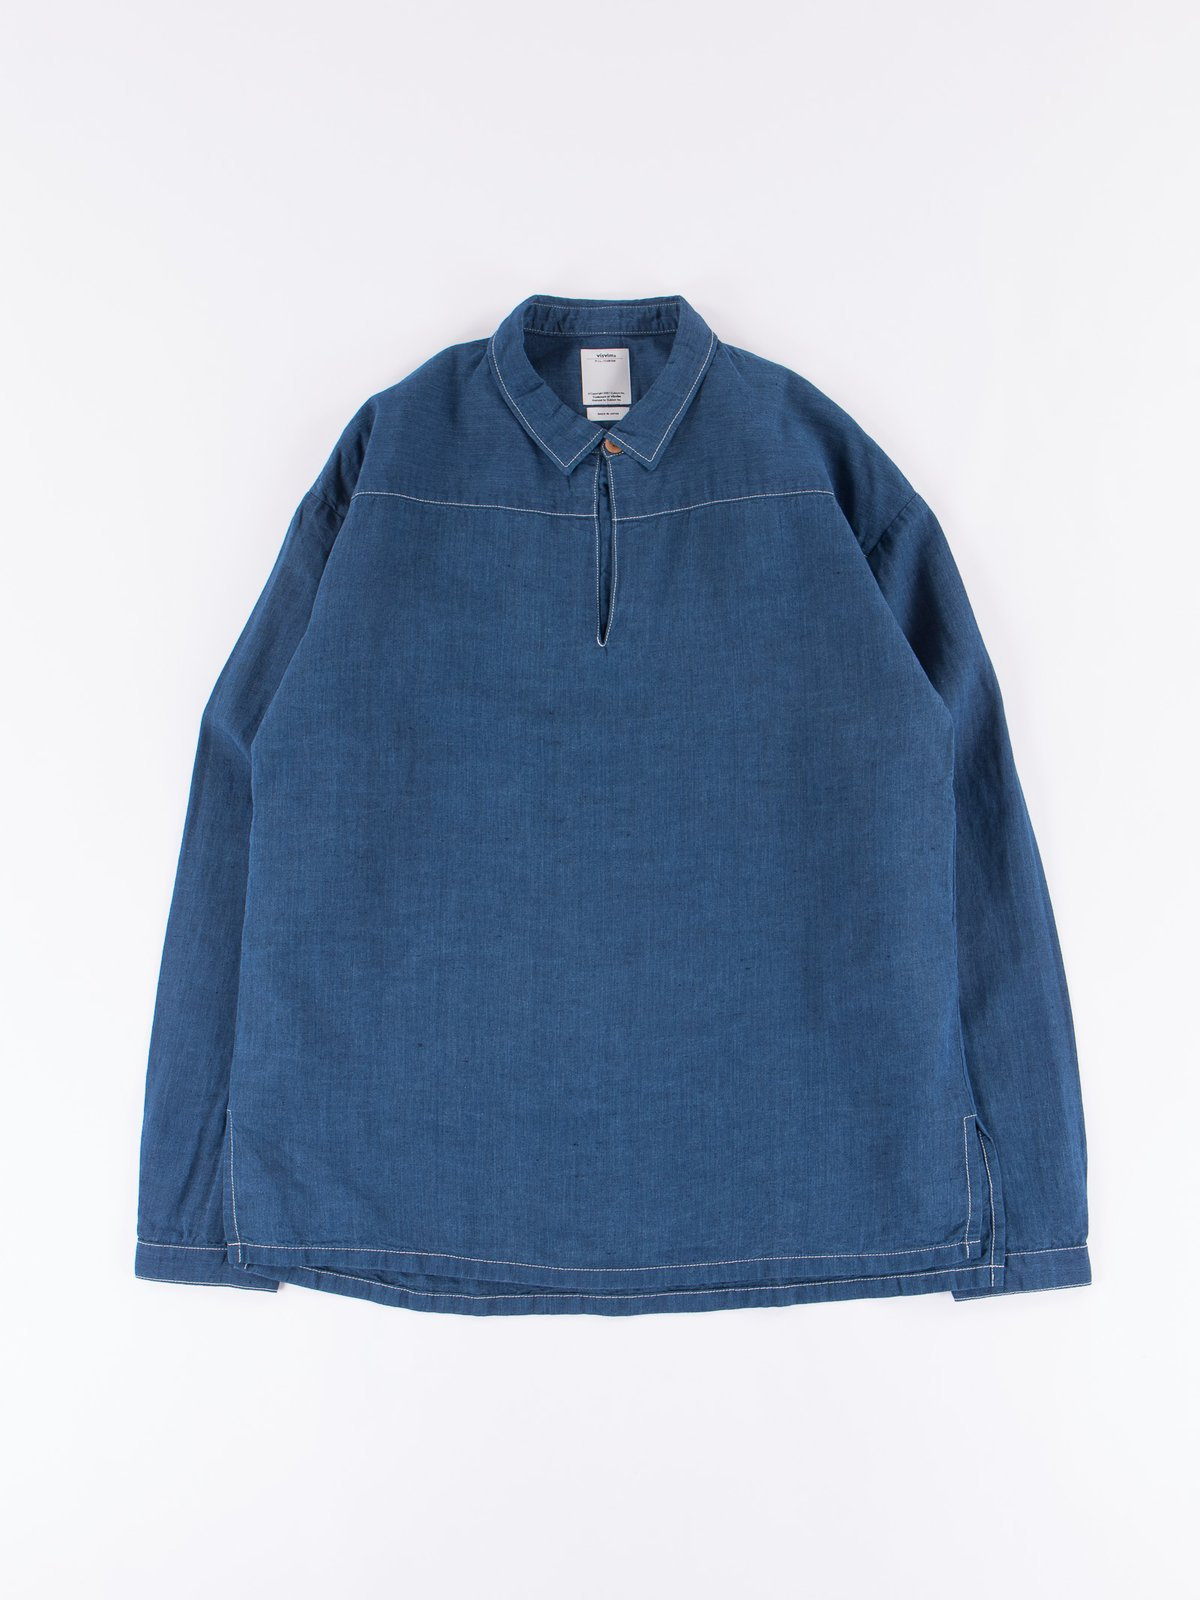 Navy Chambray Kerchief Tunic Shirt - Image 1